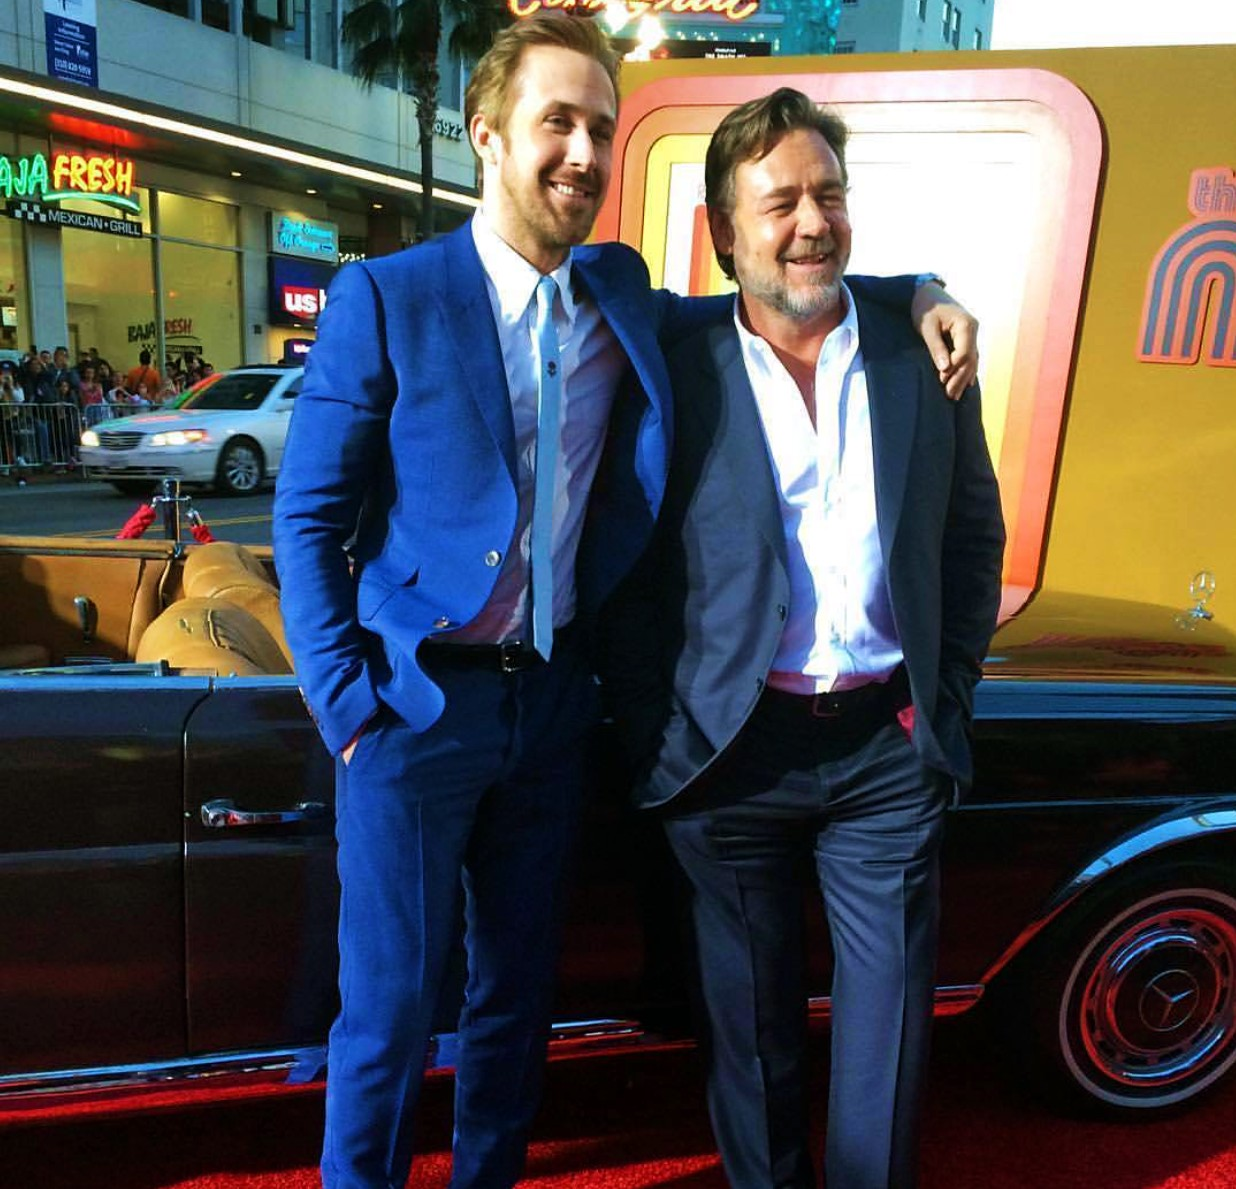 The Nice Guys, movie premiere, red carpet, Ryan Gosling, Russell Crowe